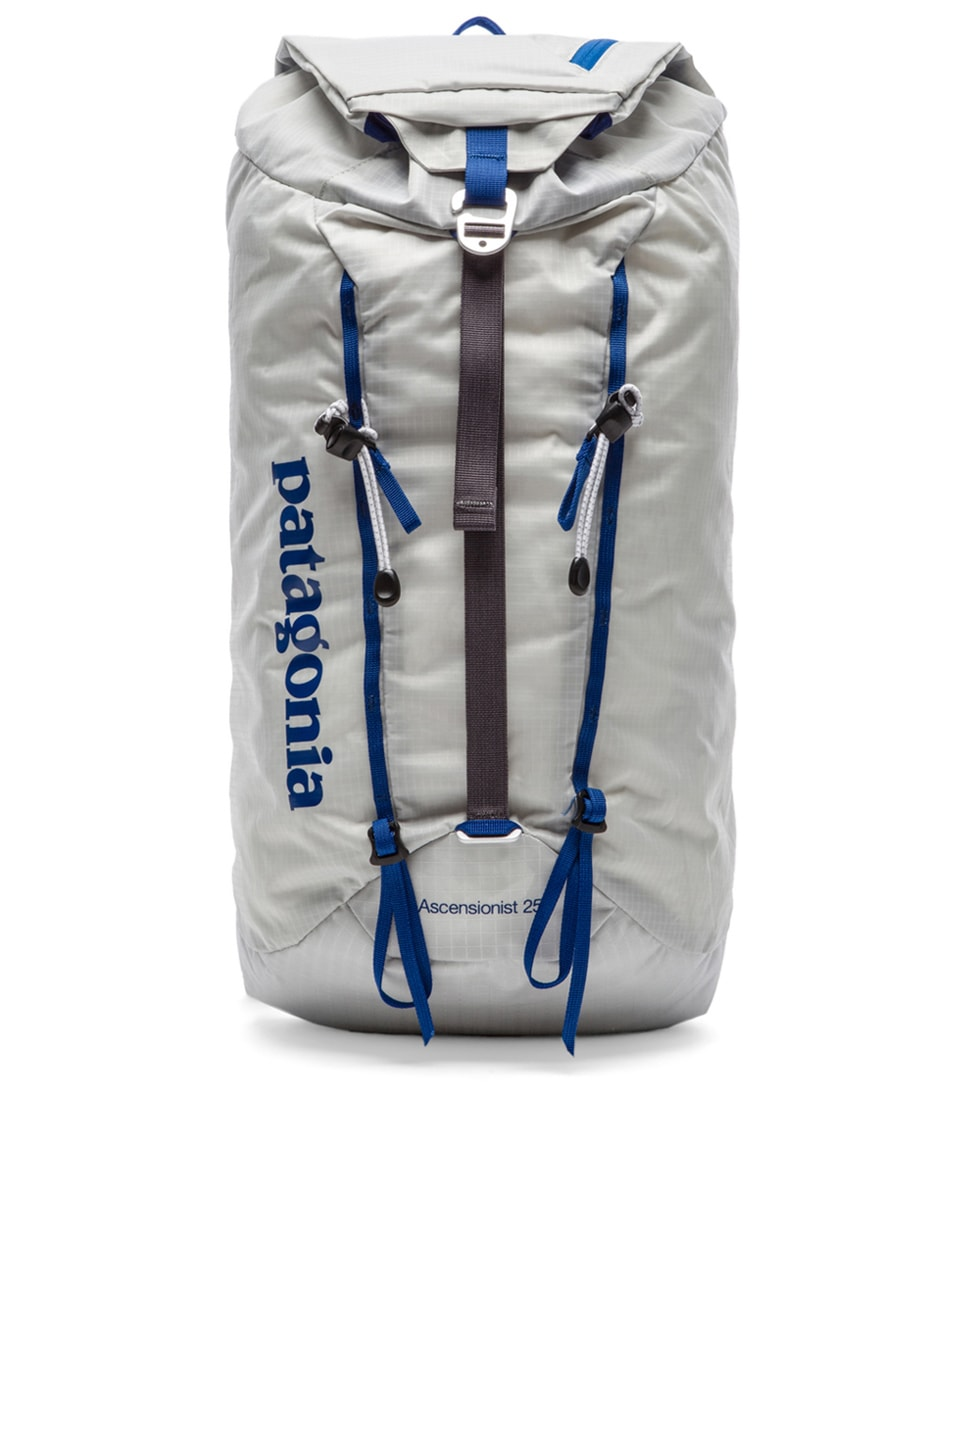 Patagonia Ascensionist Pack 25L in Tailored Gre